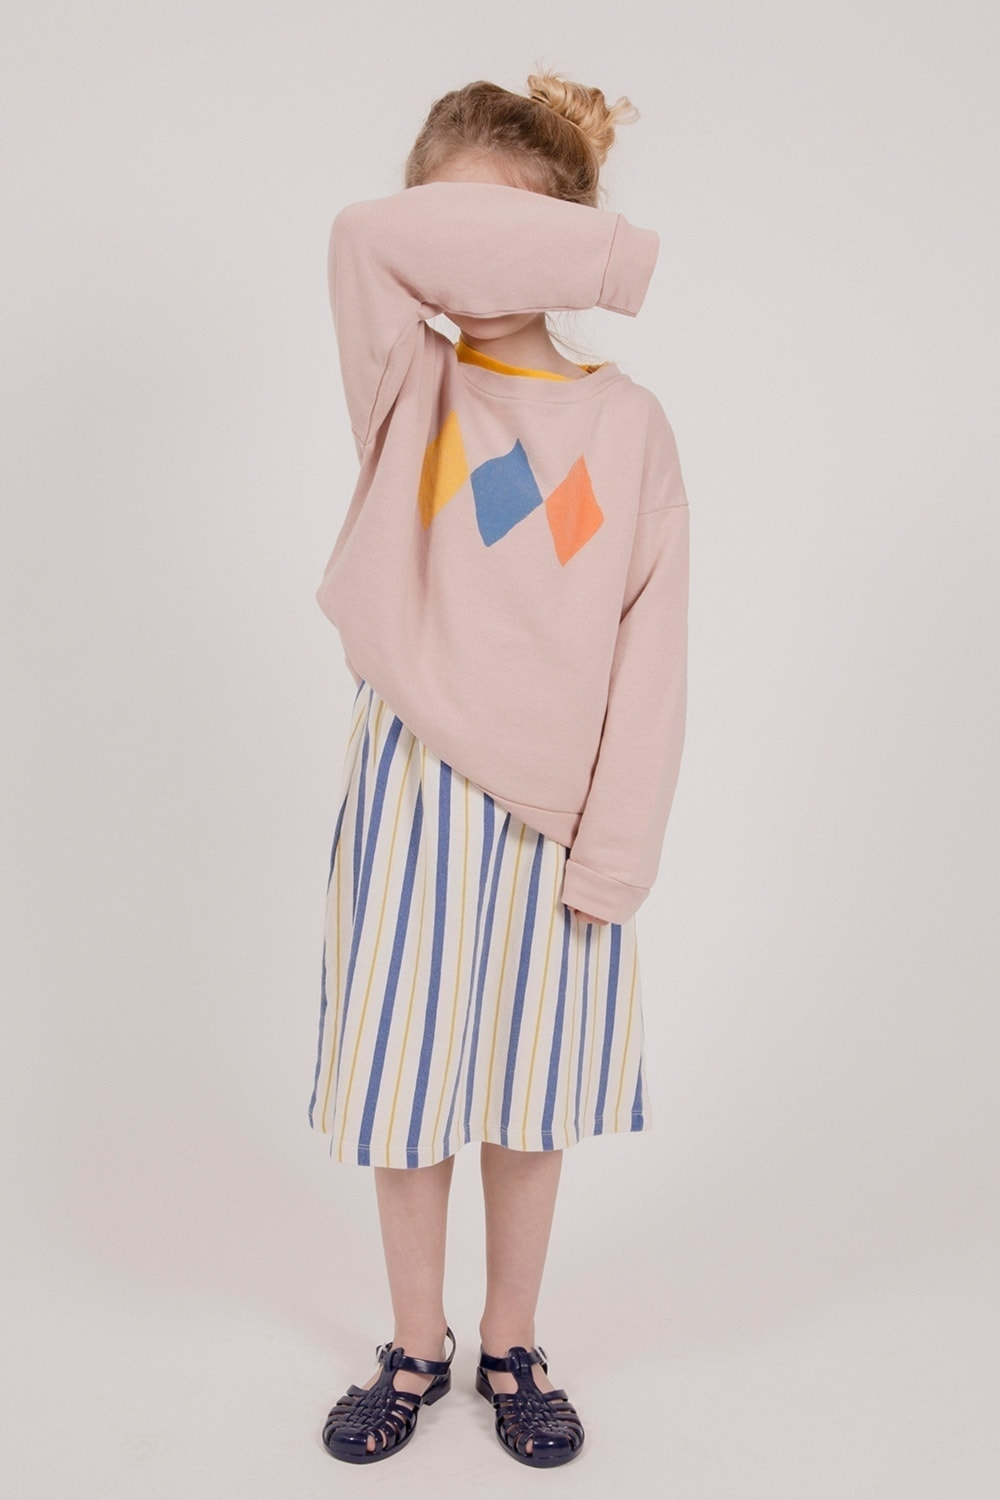 thecampamento_striped_skirt_lookbook